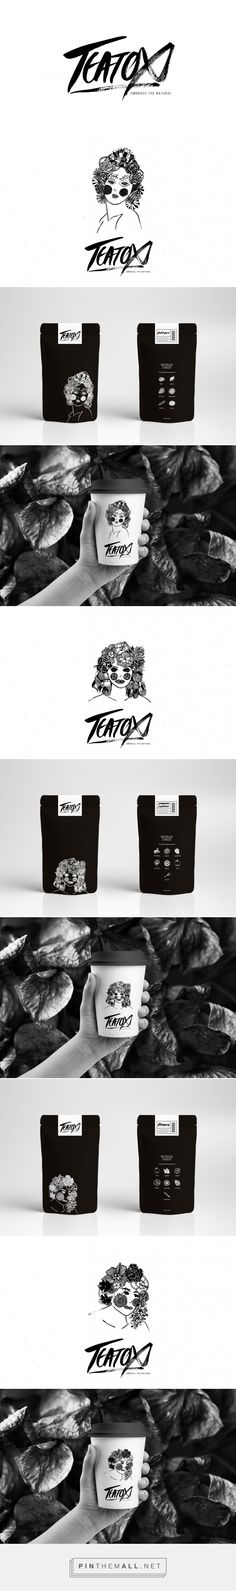 Teatox (Student Project) - Packaging of the World - Creative Package Design Gallery - http://www.packagingoftheworld.com/2016/08/teatox-student-project.html